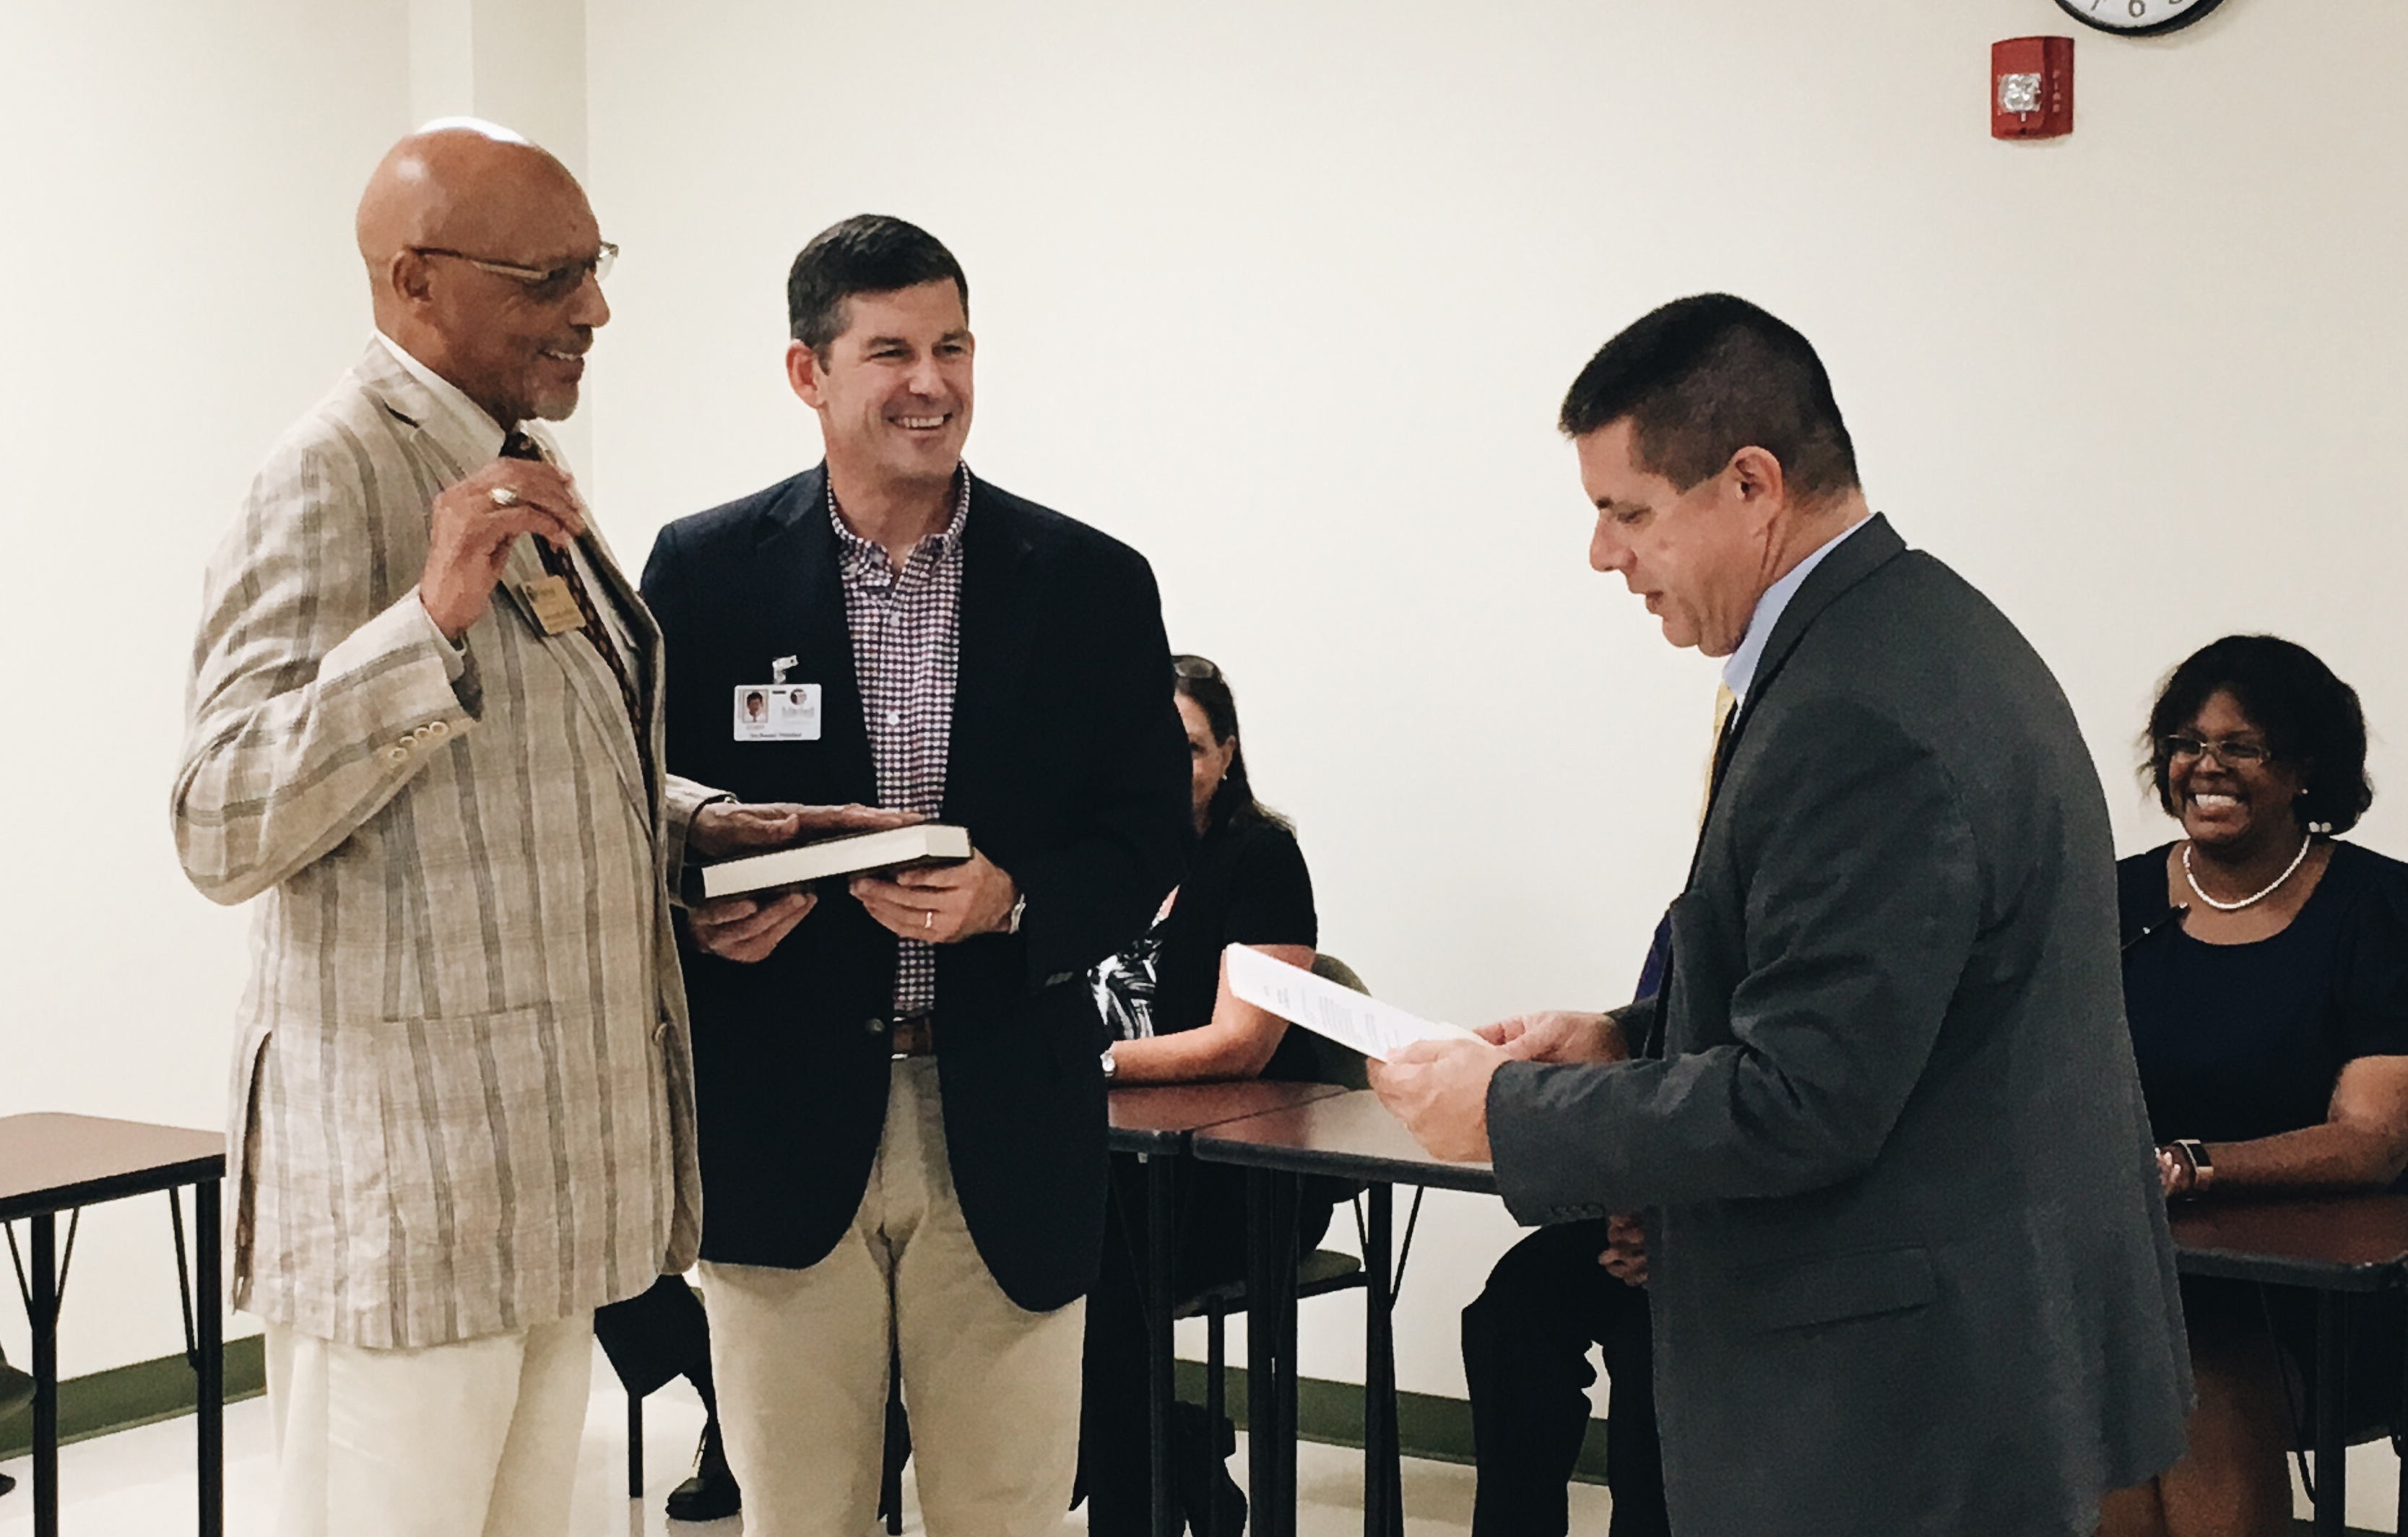 Mr. David J. Meachem is sworn in at the September 28, 2018 Board of Trustees meeting.